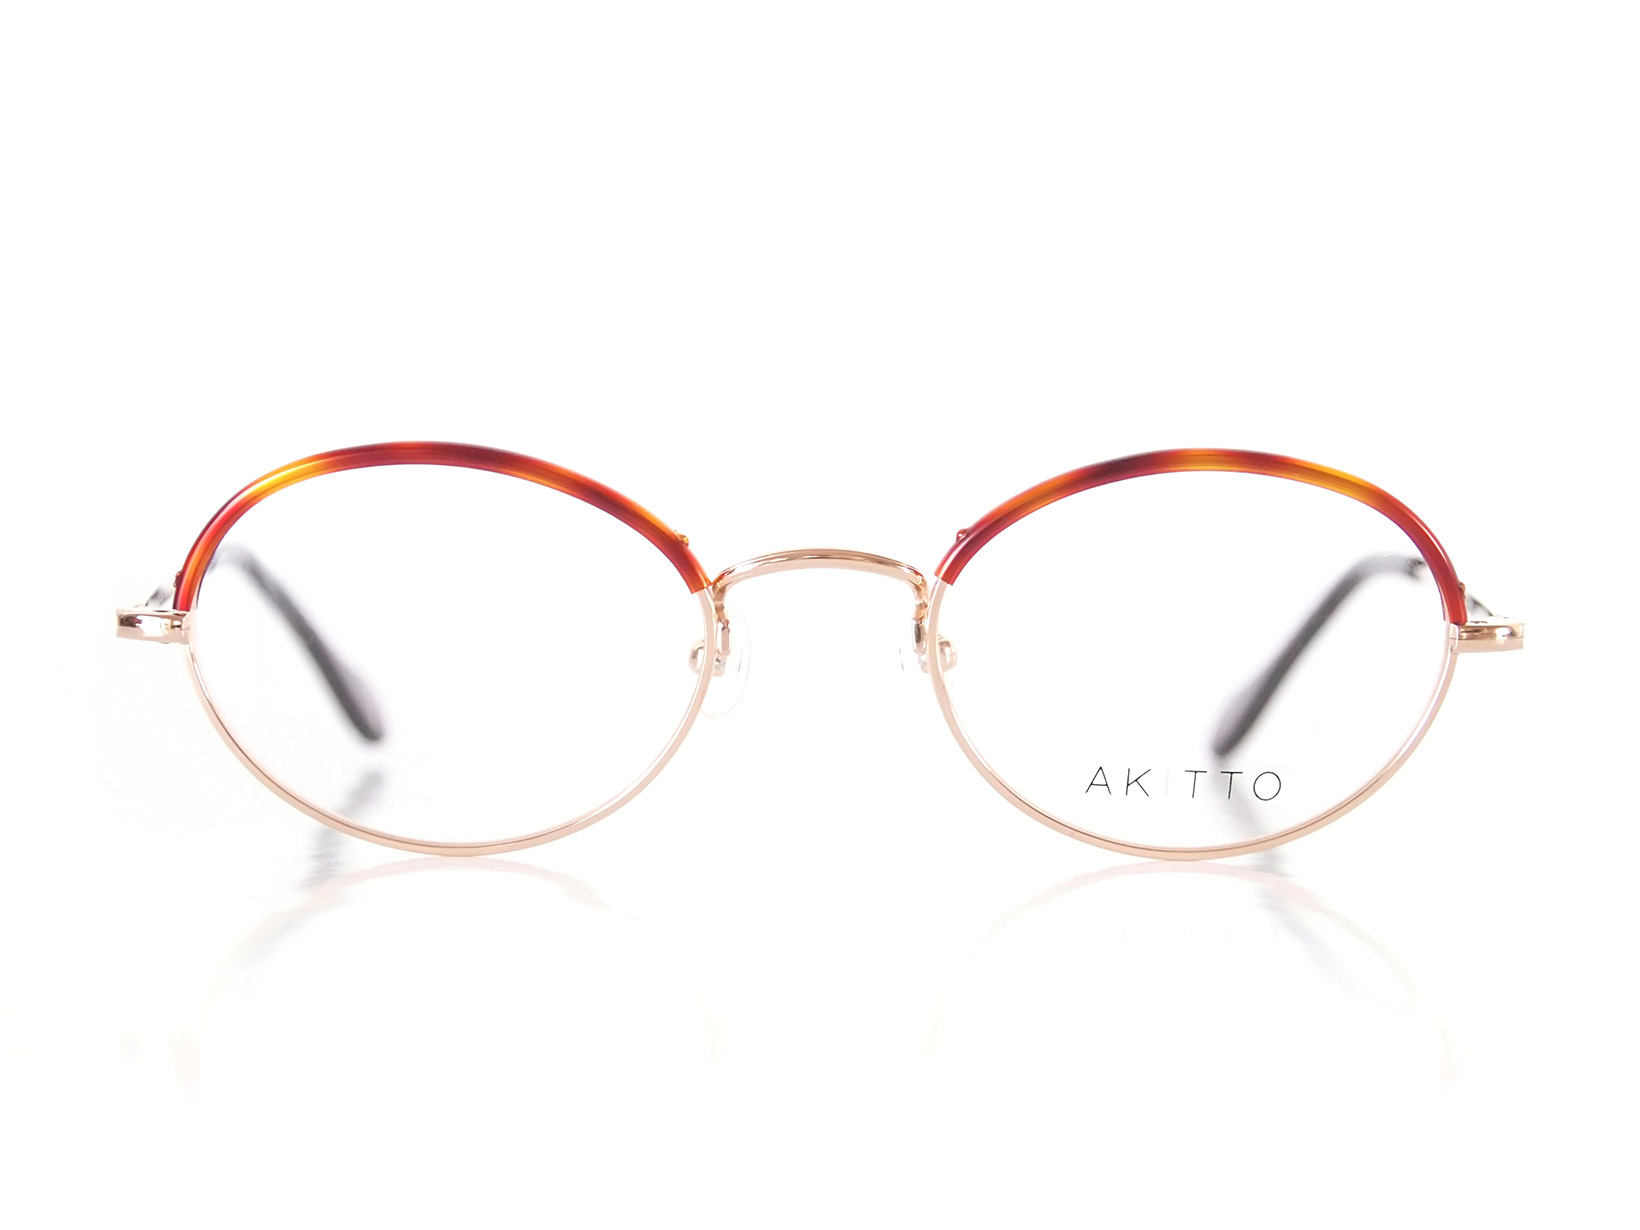 AKITTO 2015-4th hal color|GS size:48□20 material:titanium price:34,500-(+tax)